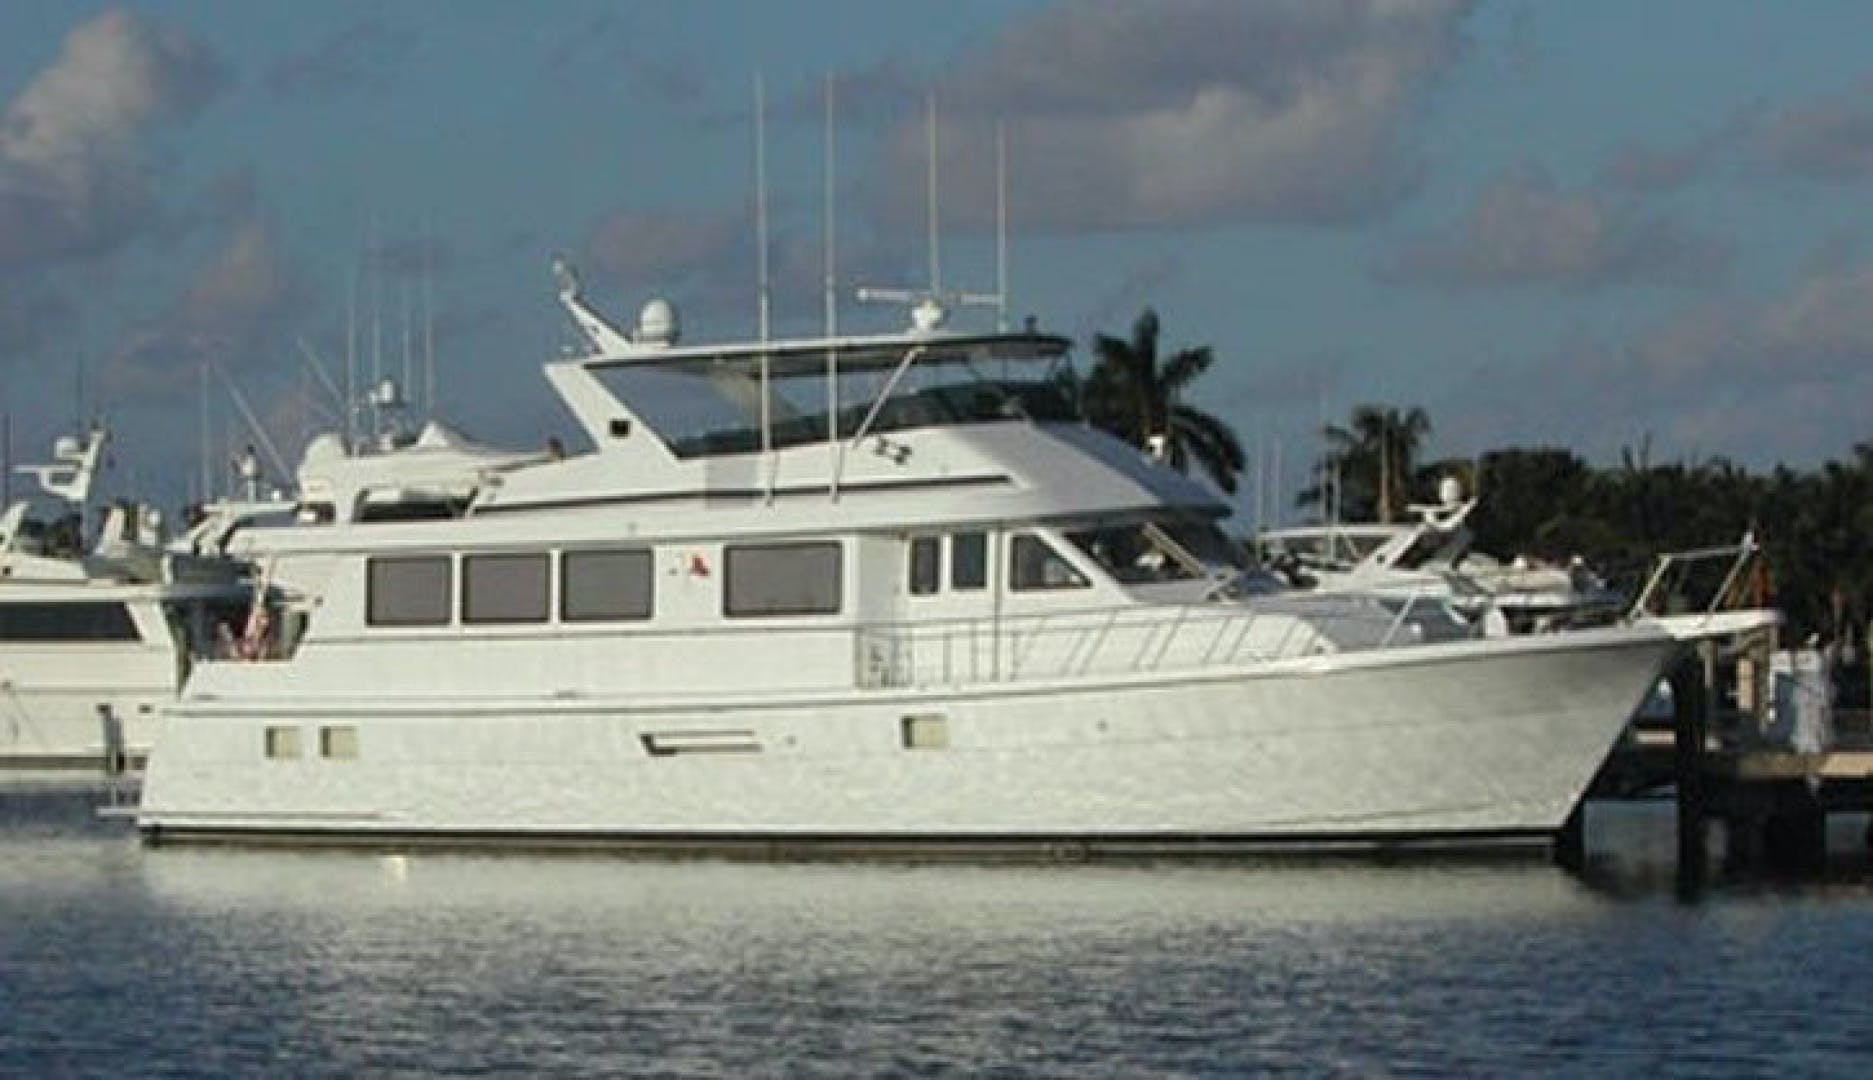 1998 Hatteras 74' Sport Deck WHALE'S WAY | Picture 1 of 1